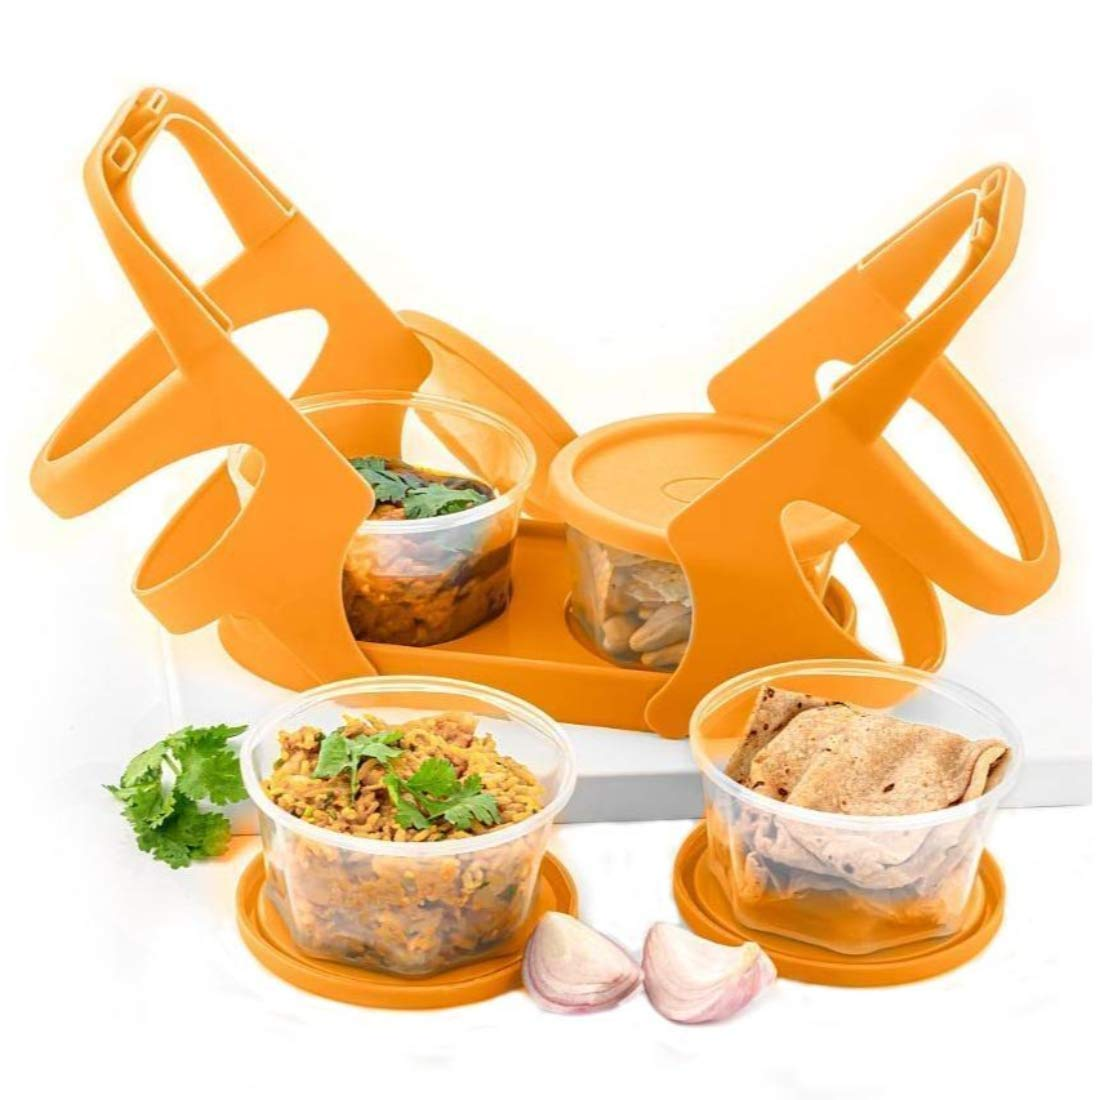 Lazywindow Lunch/Tiffin Box with Attractive Stand and Food Containers, 4 in 1 Lunch Box for School and Office